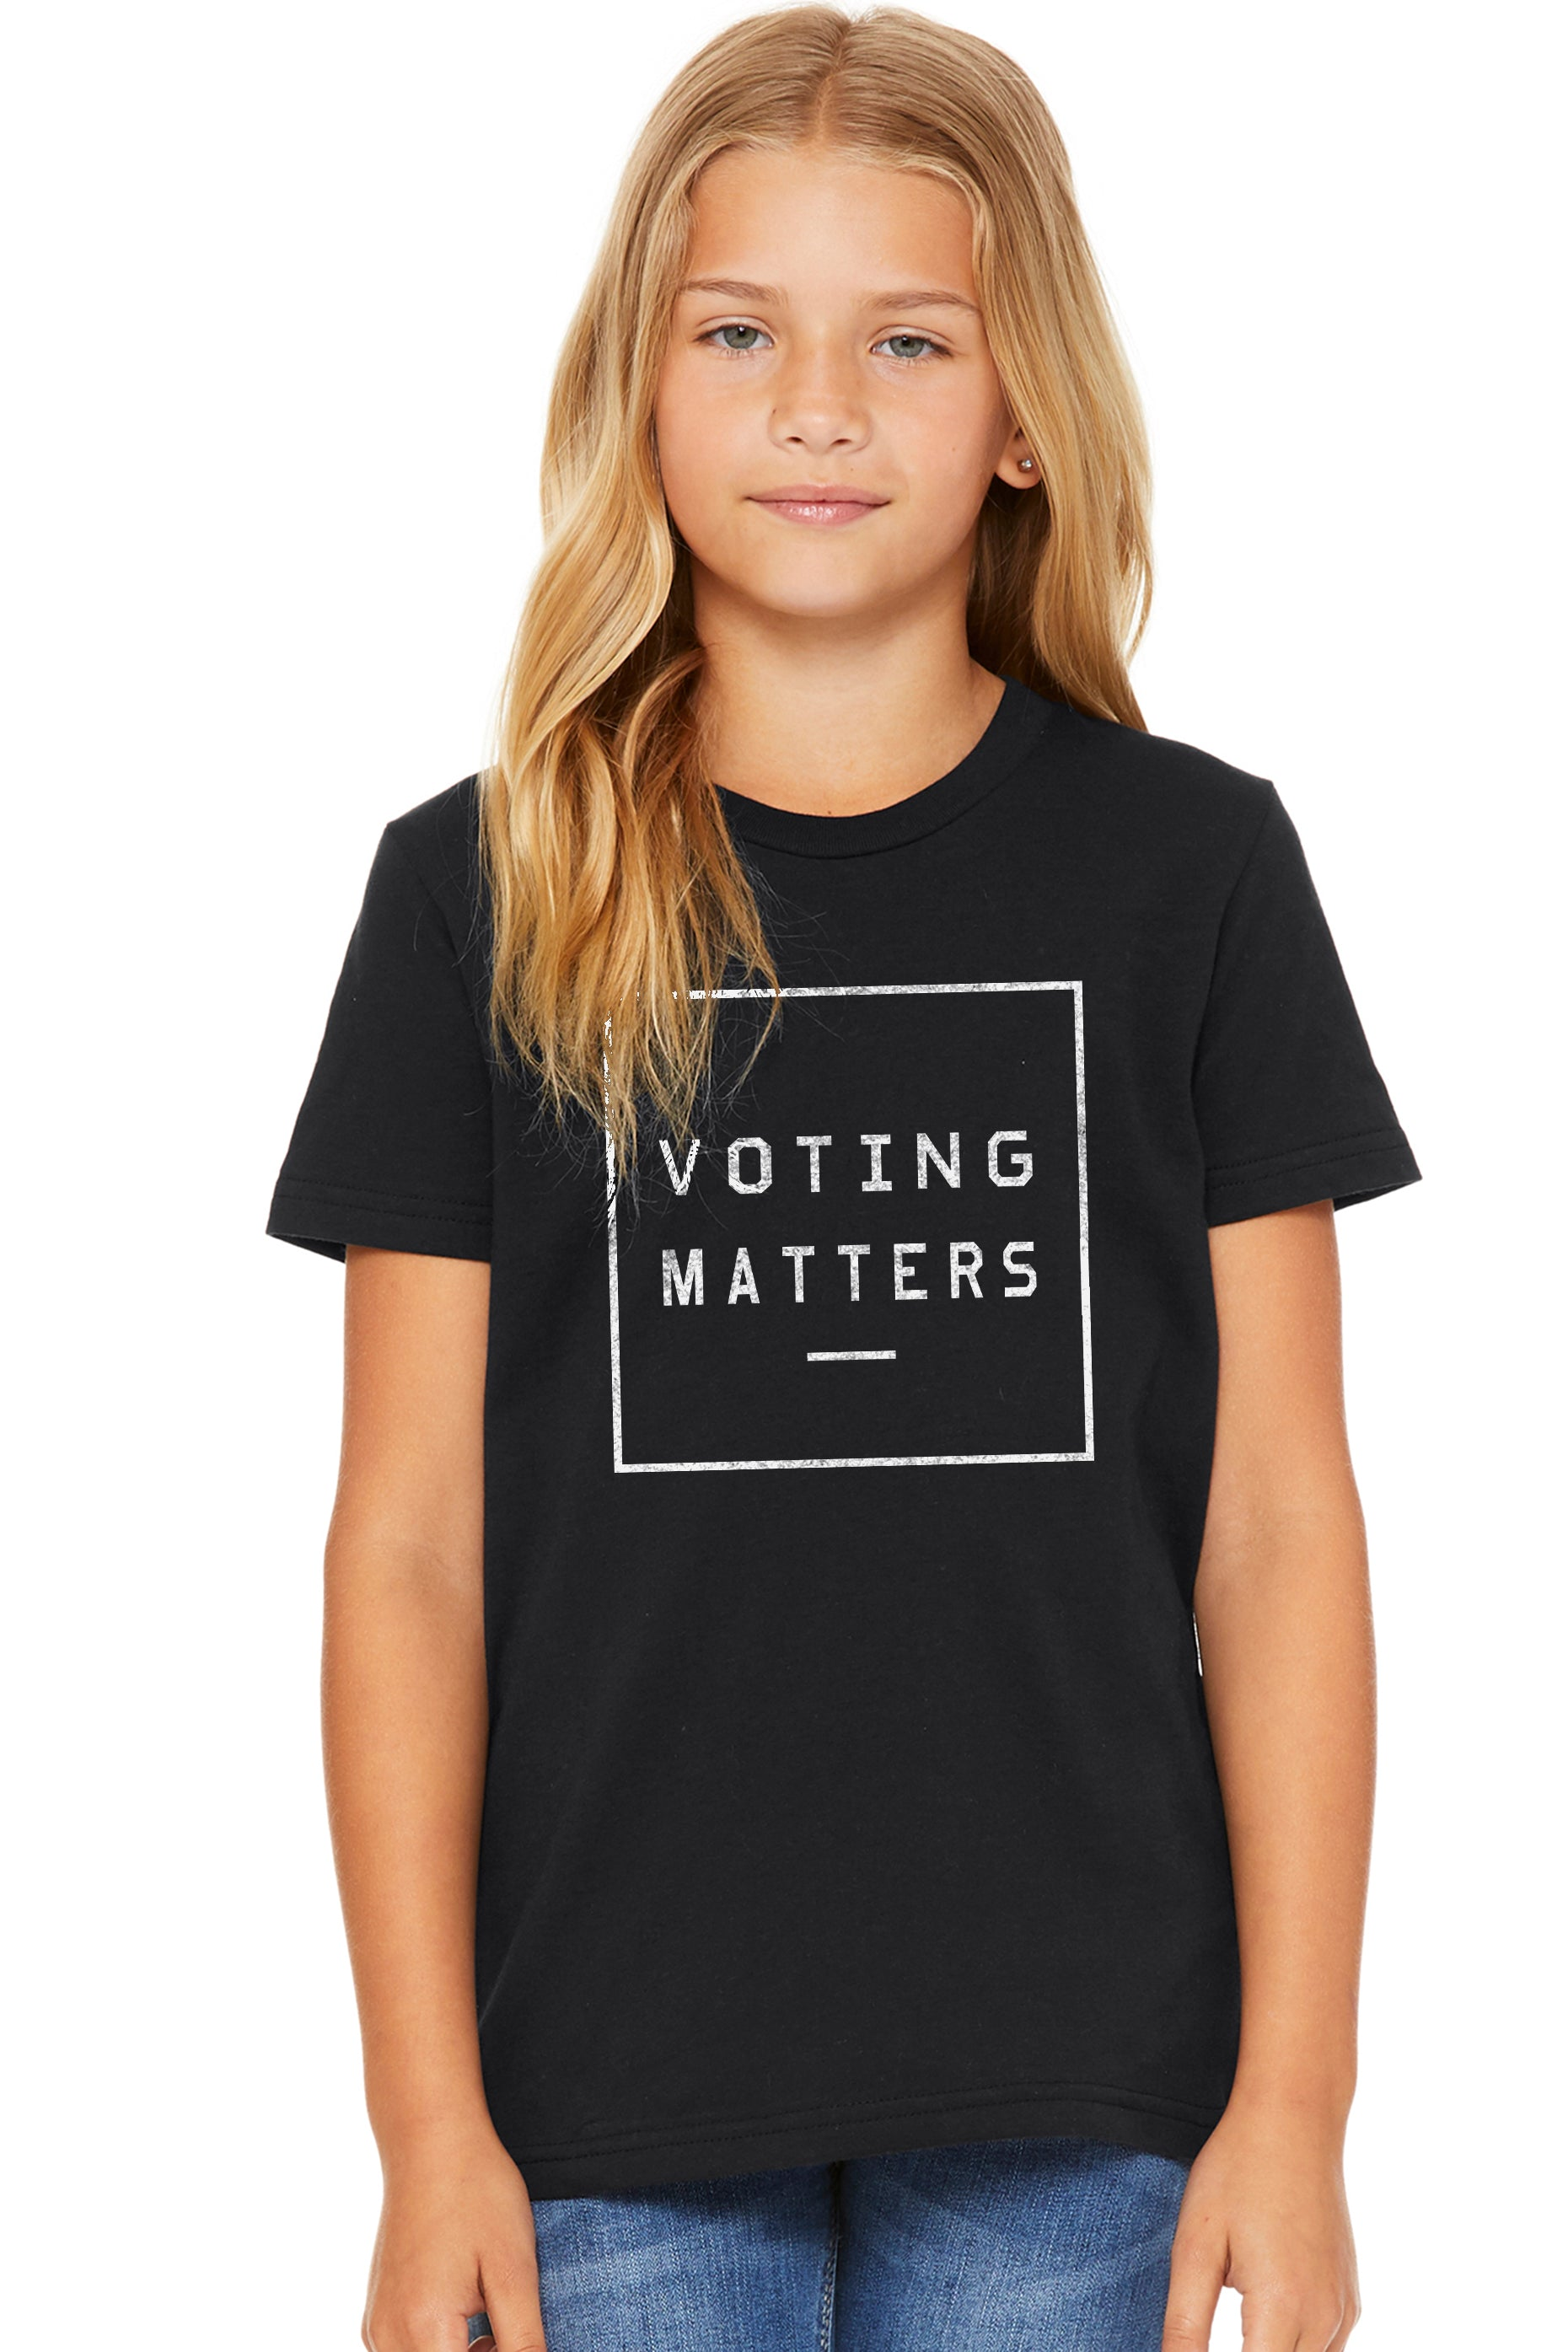 VOTING MATTERS PREMIUM CLASSIC TEE FOR KIDS